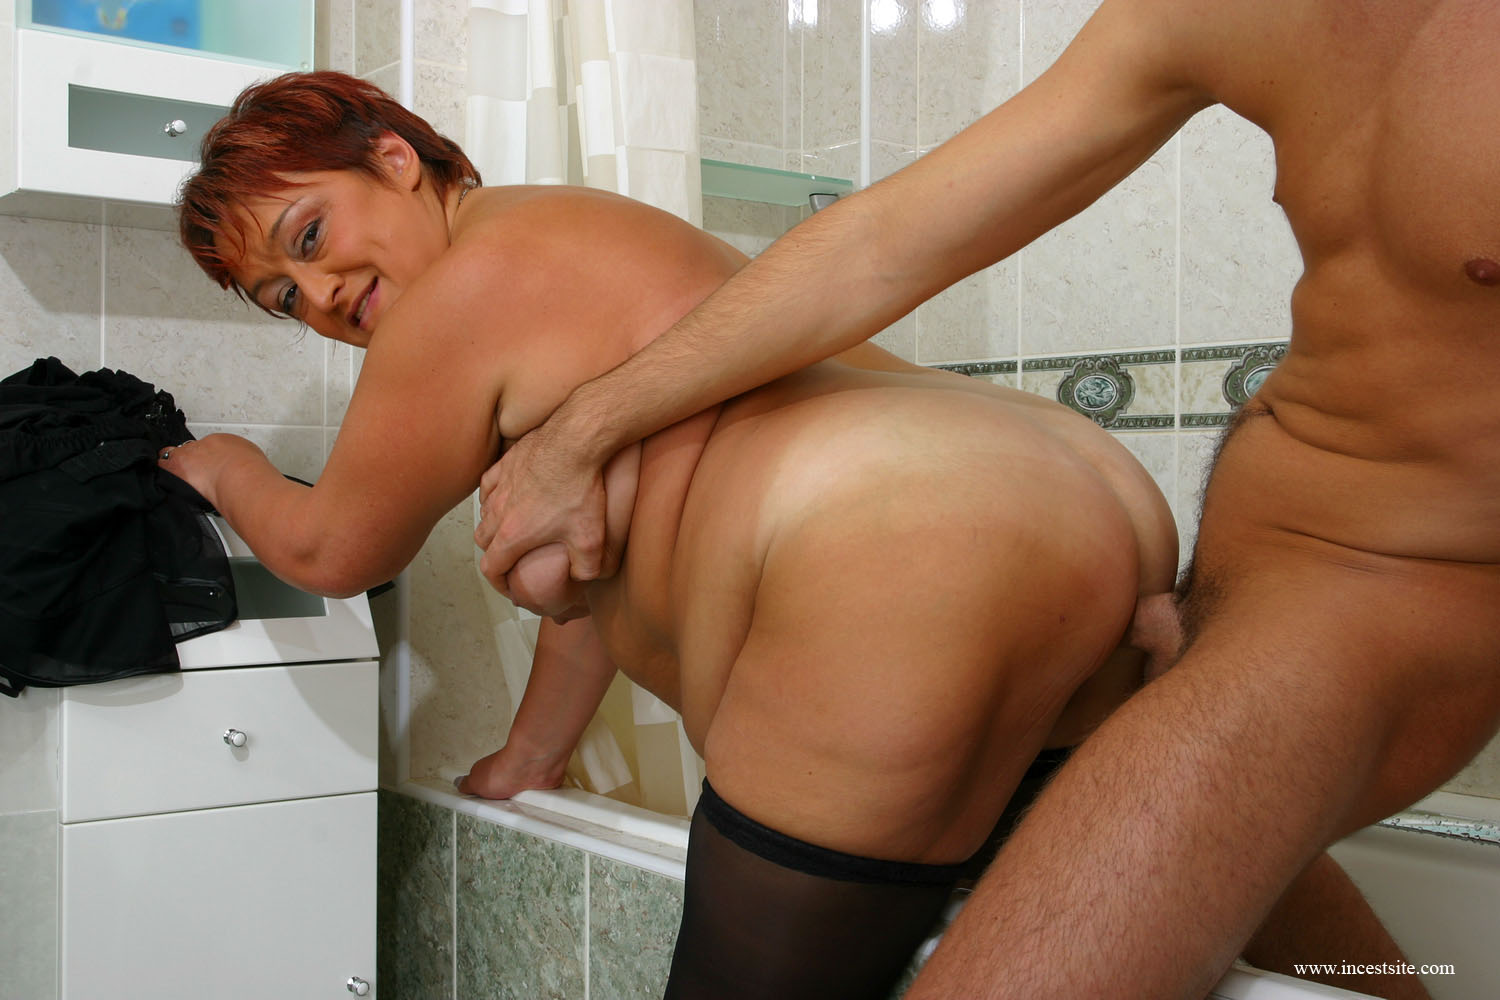 08_chubby-mother-washing-her.jpg